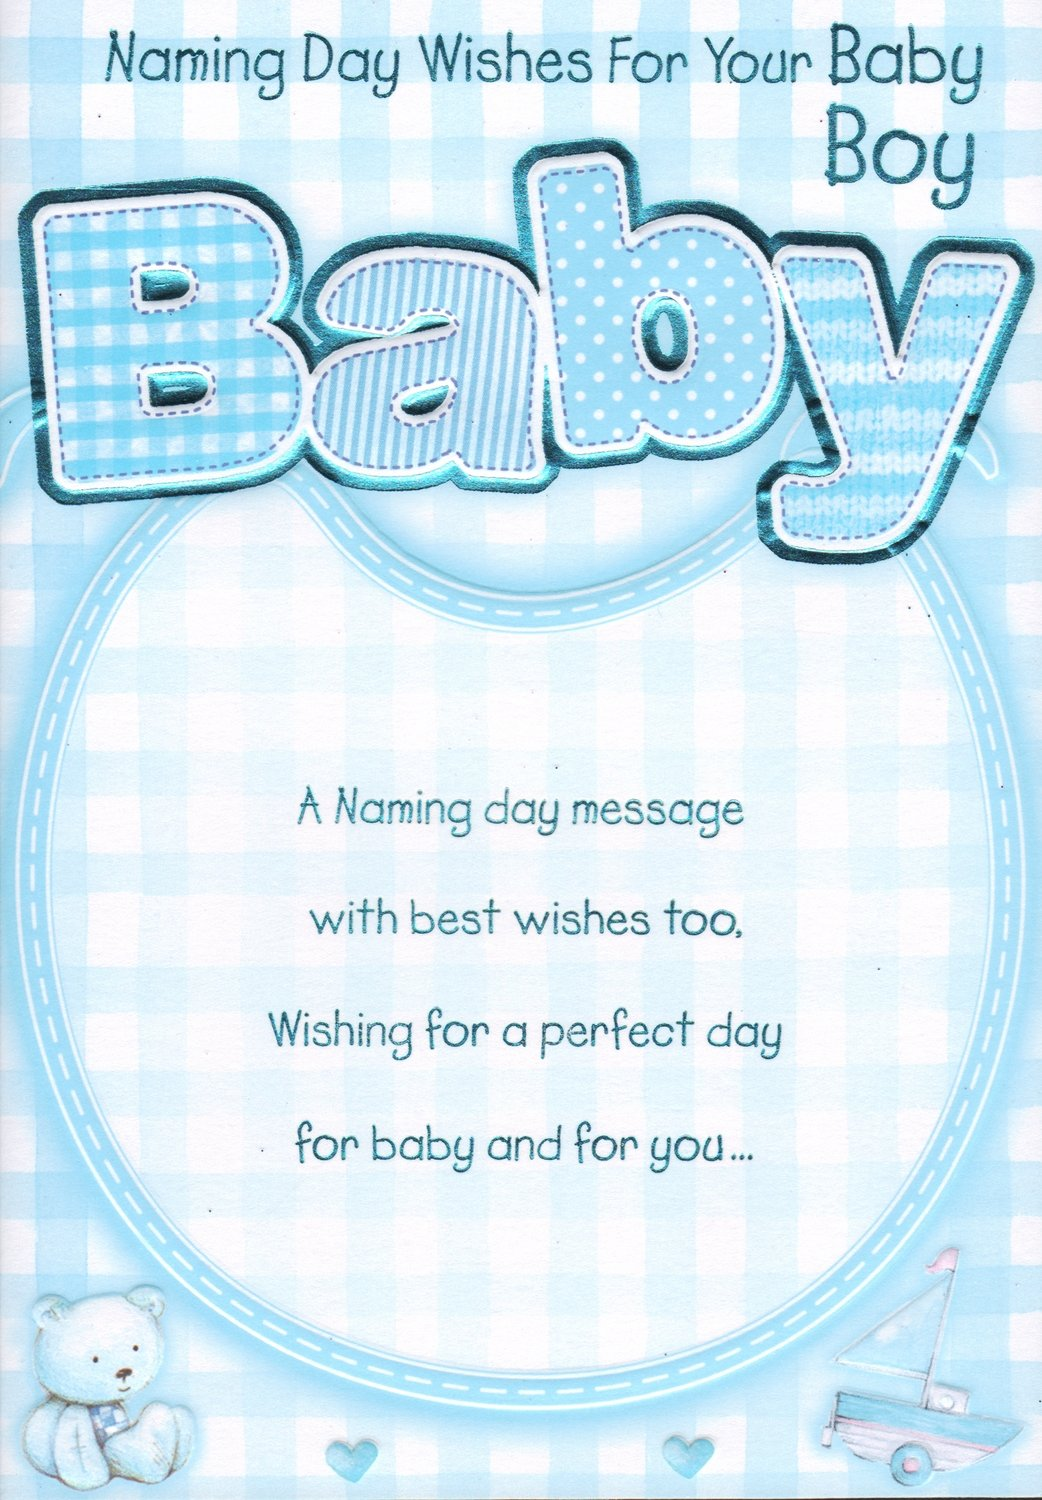 Naming day card naming day wishes for your baby boy amazon naming day card naming day wishes for your baby boy amazon garden outdoors m4hsunfo Choice Image